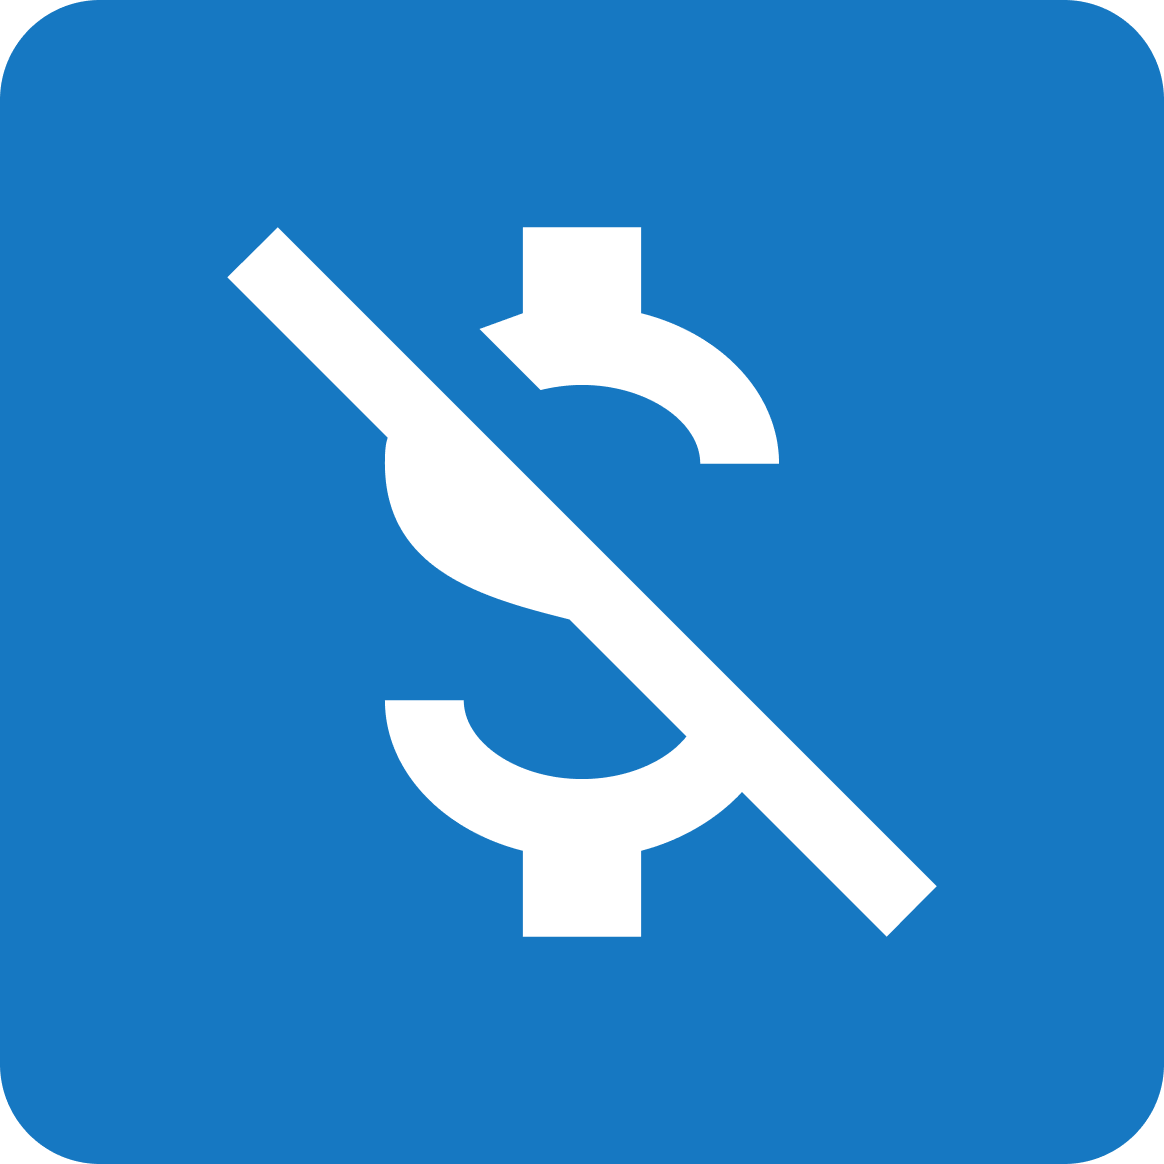 free-to-use-icon